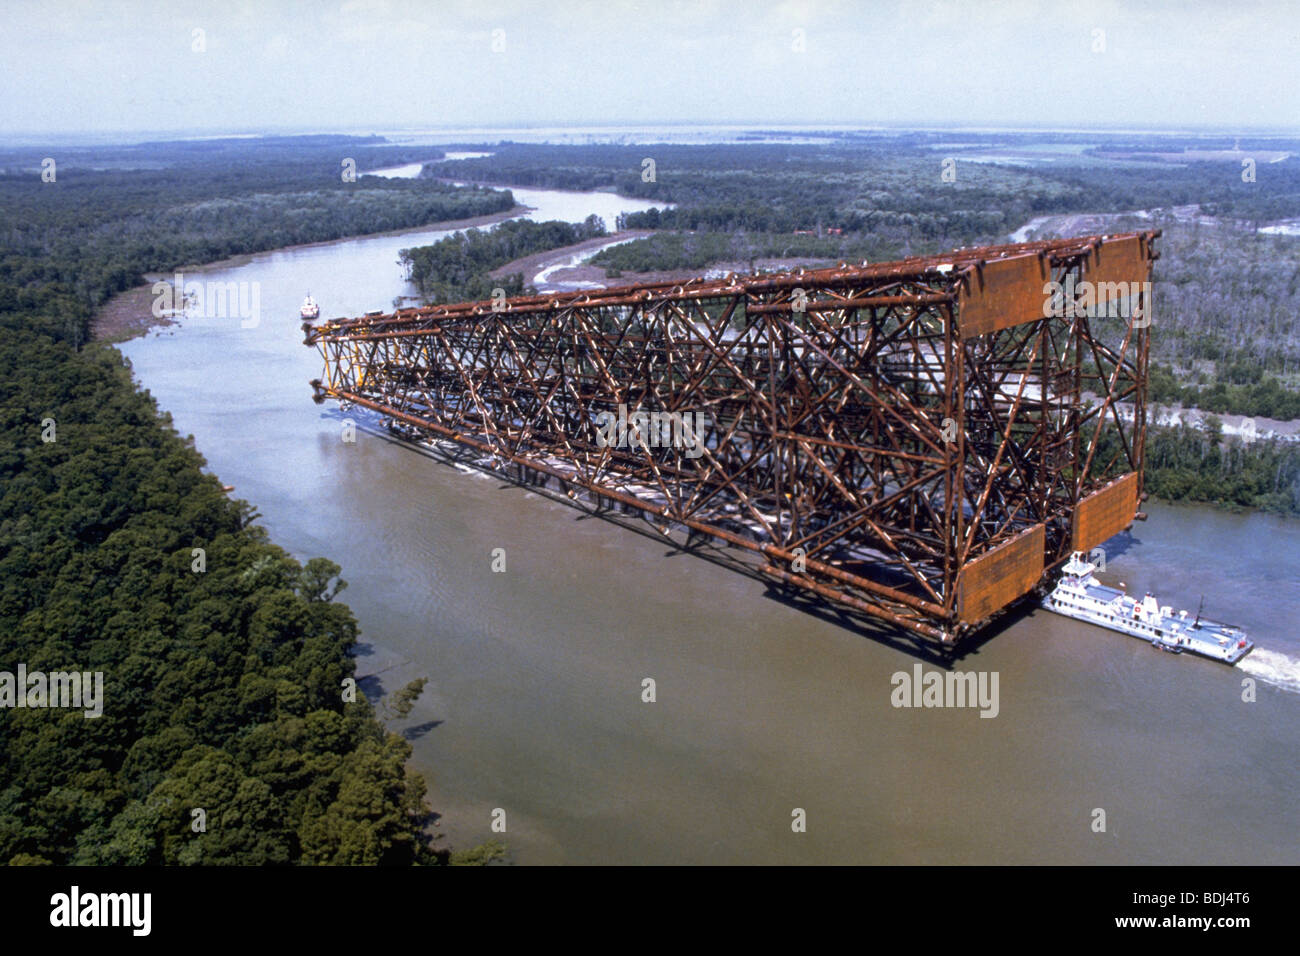 Off shore oil rig, oil jacket being floated down river on barge to gulf of Mexico - Stock Image